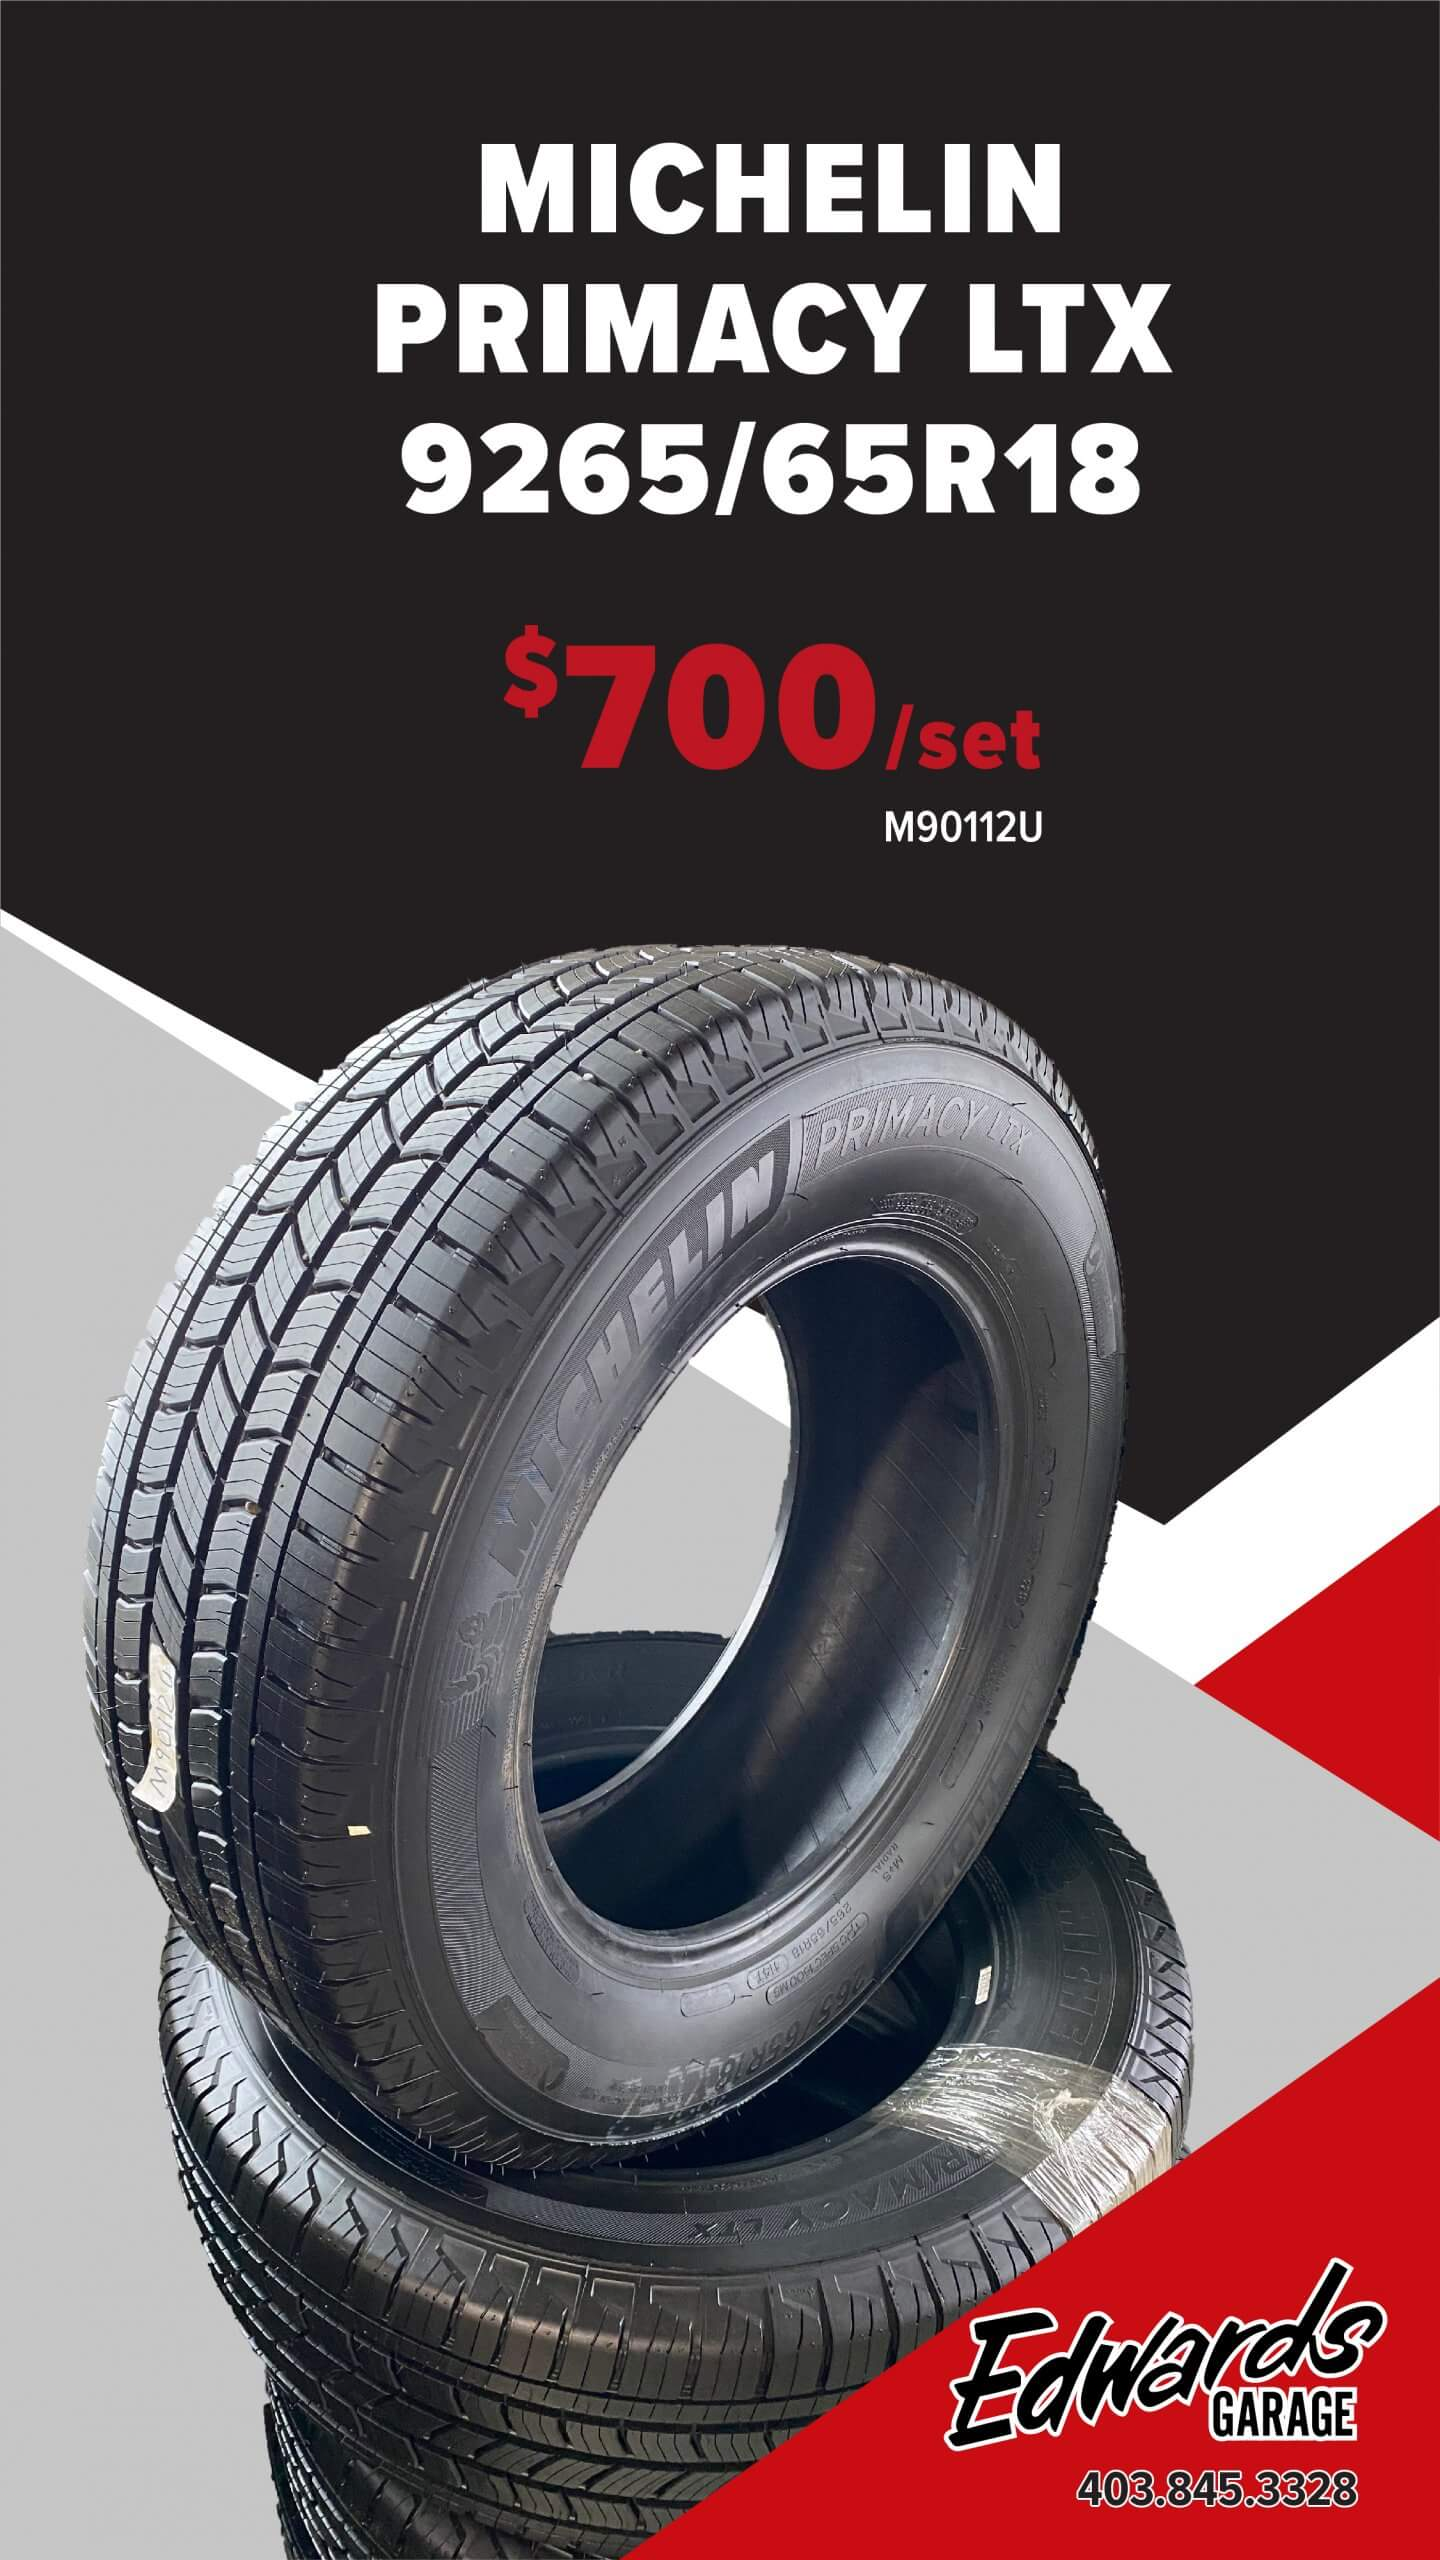 Set of Tires - Michelin